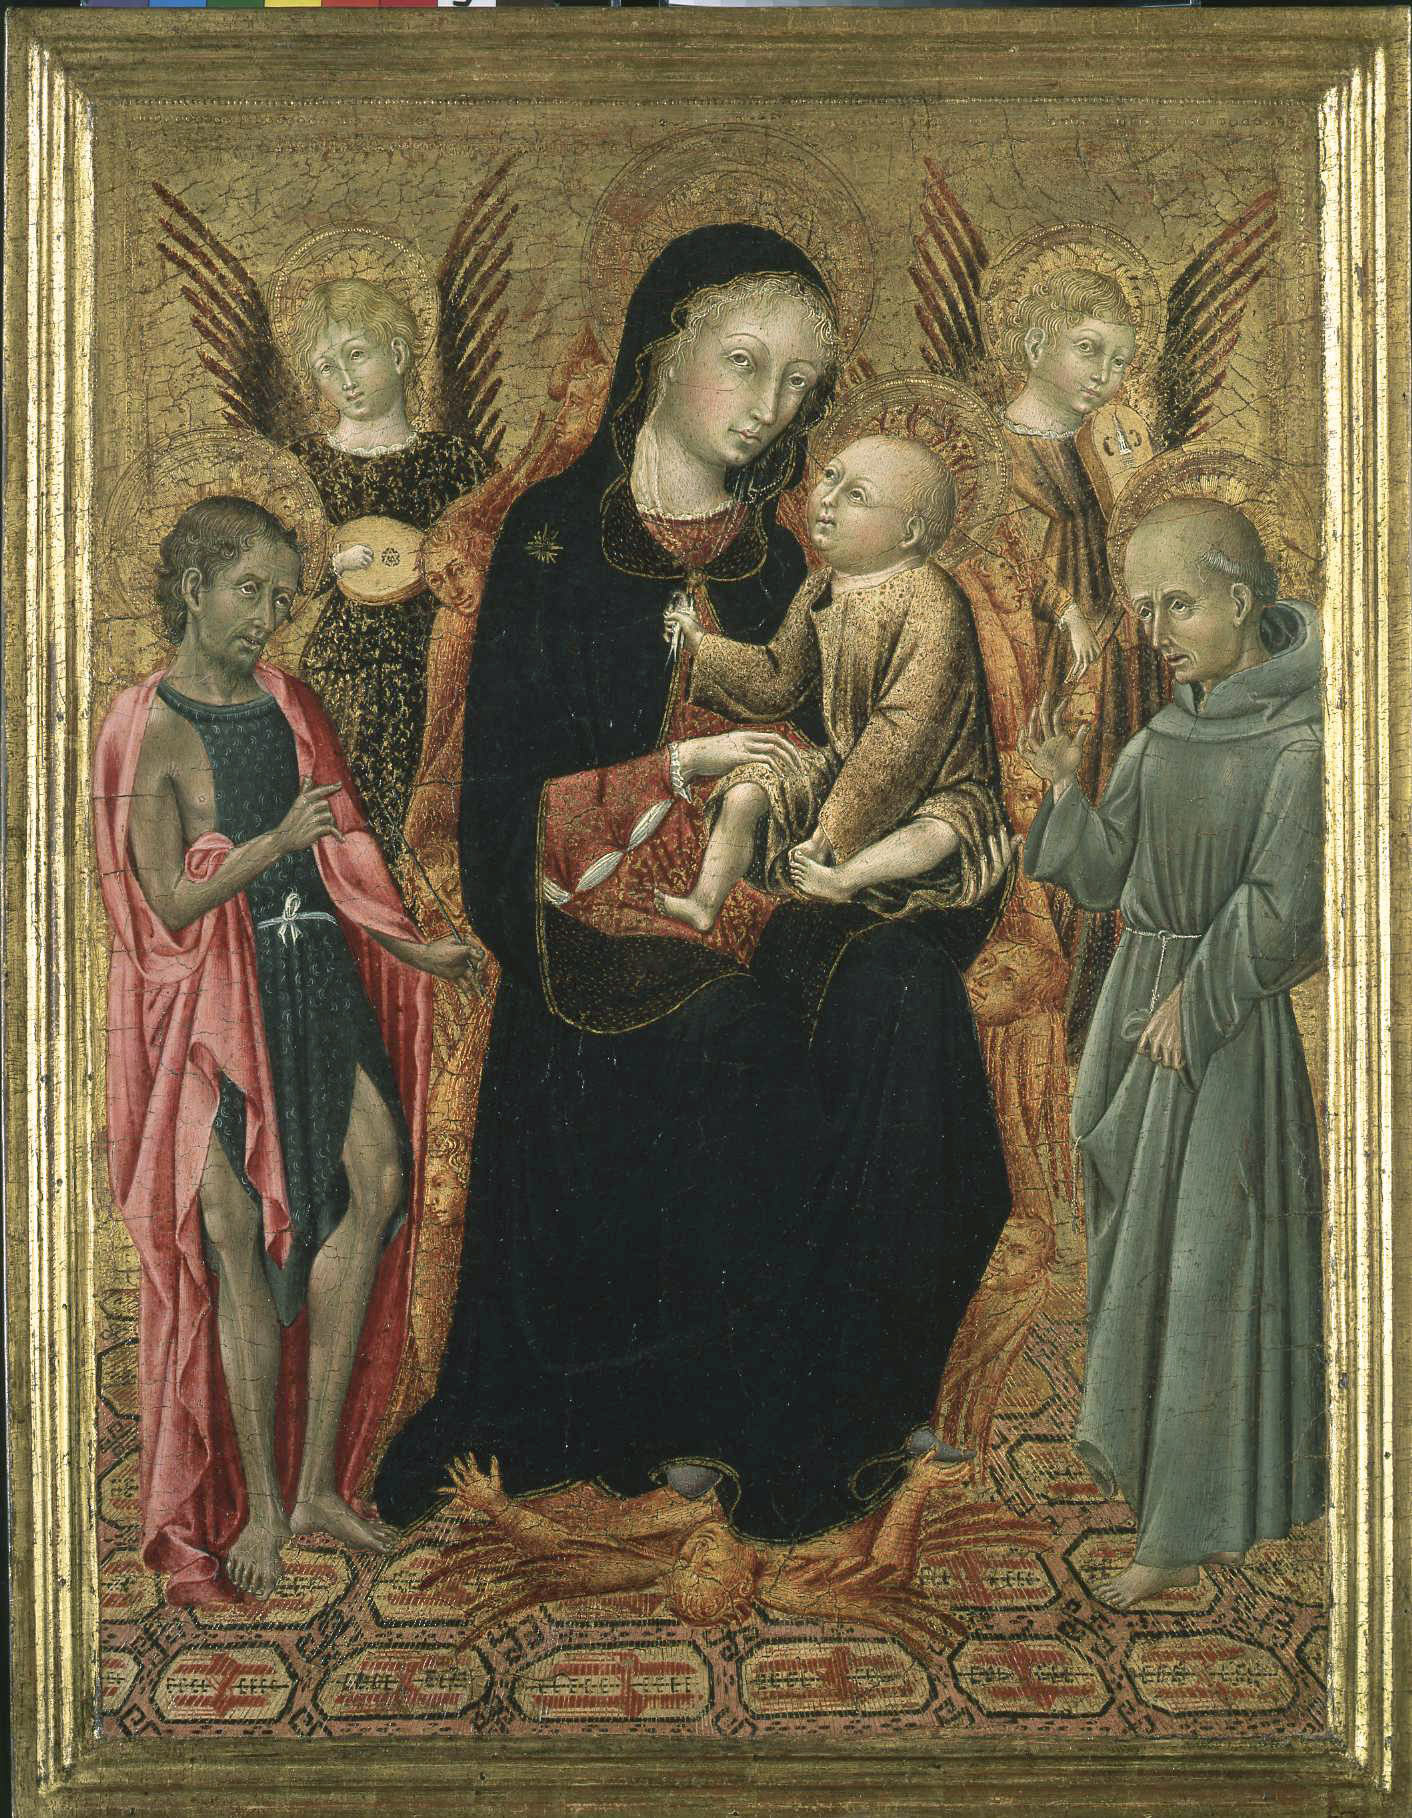 The Virgin and Child with Saints John the Baptist, St. Bernard Two angels and Seraphim